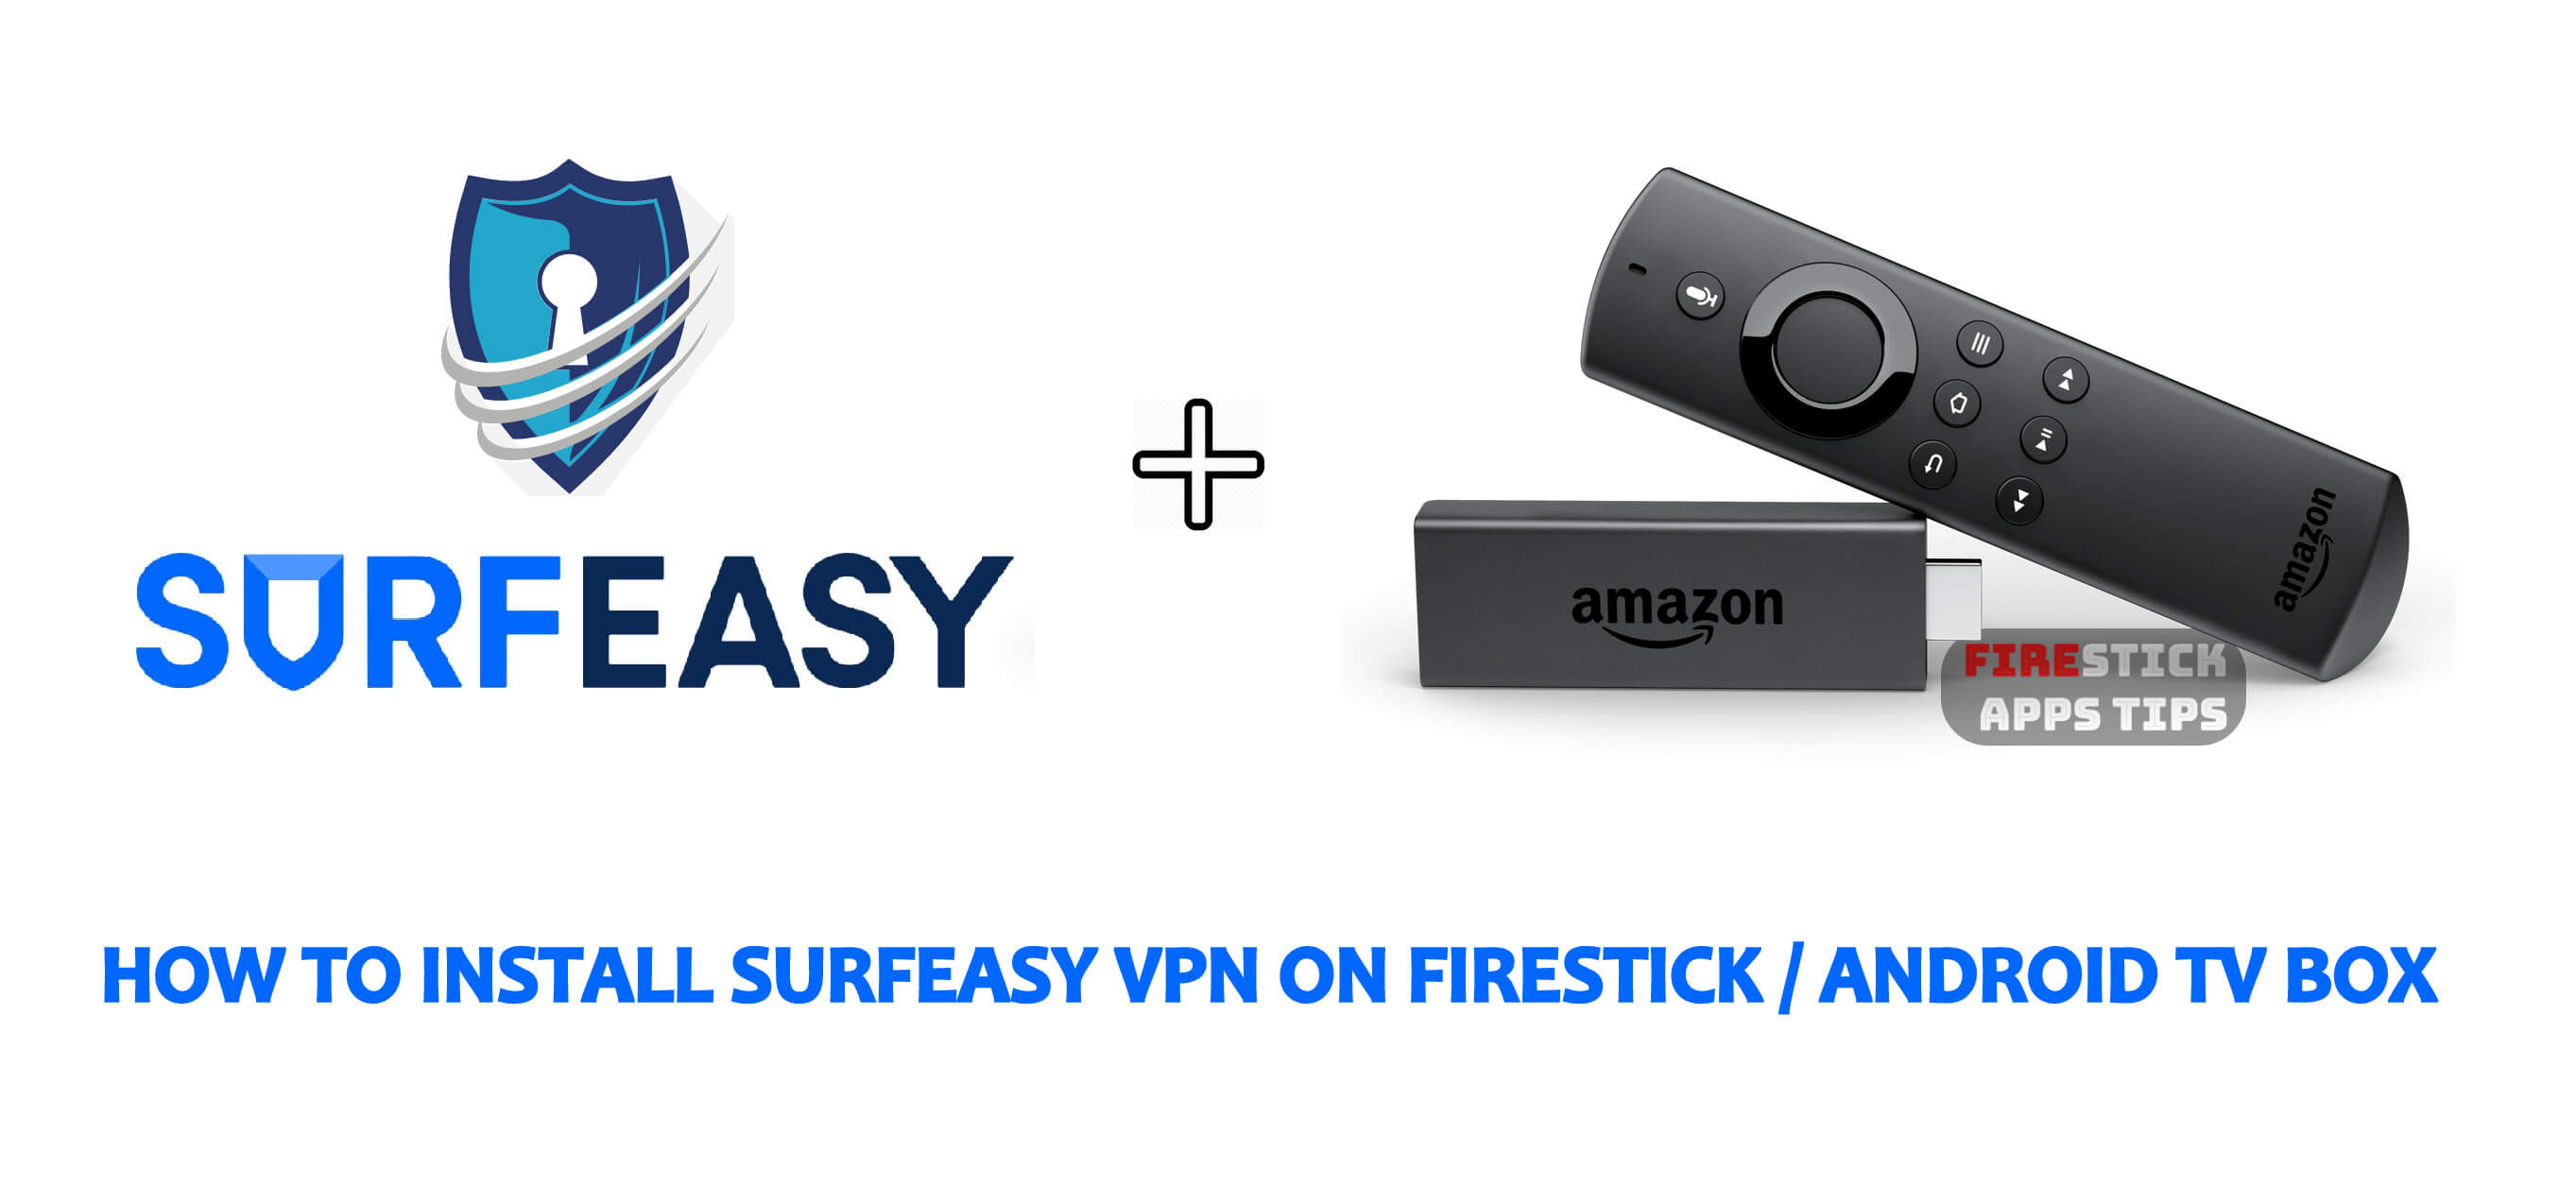 How to Install SurfEasy VPN for Firestick / Android TV Box 2021